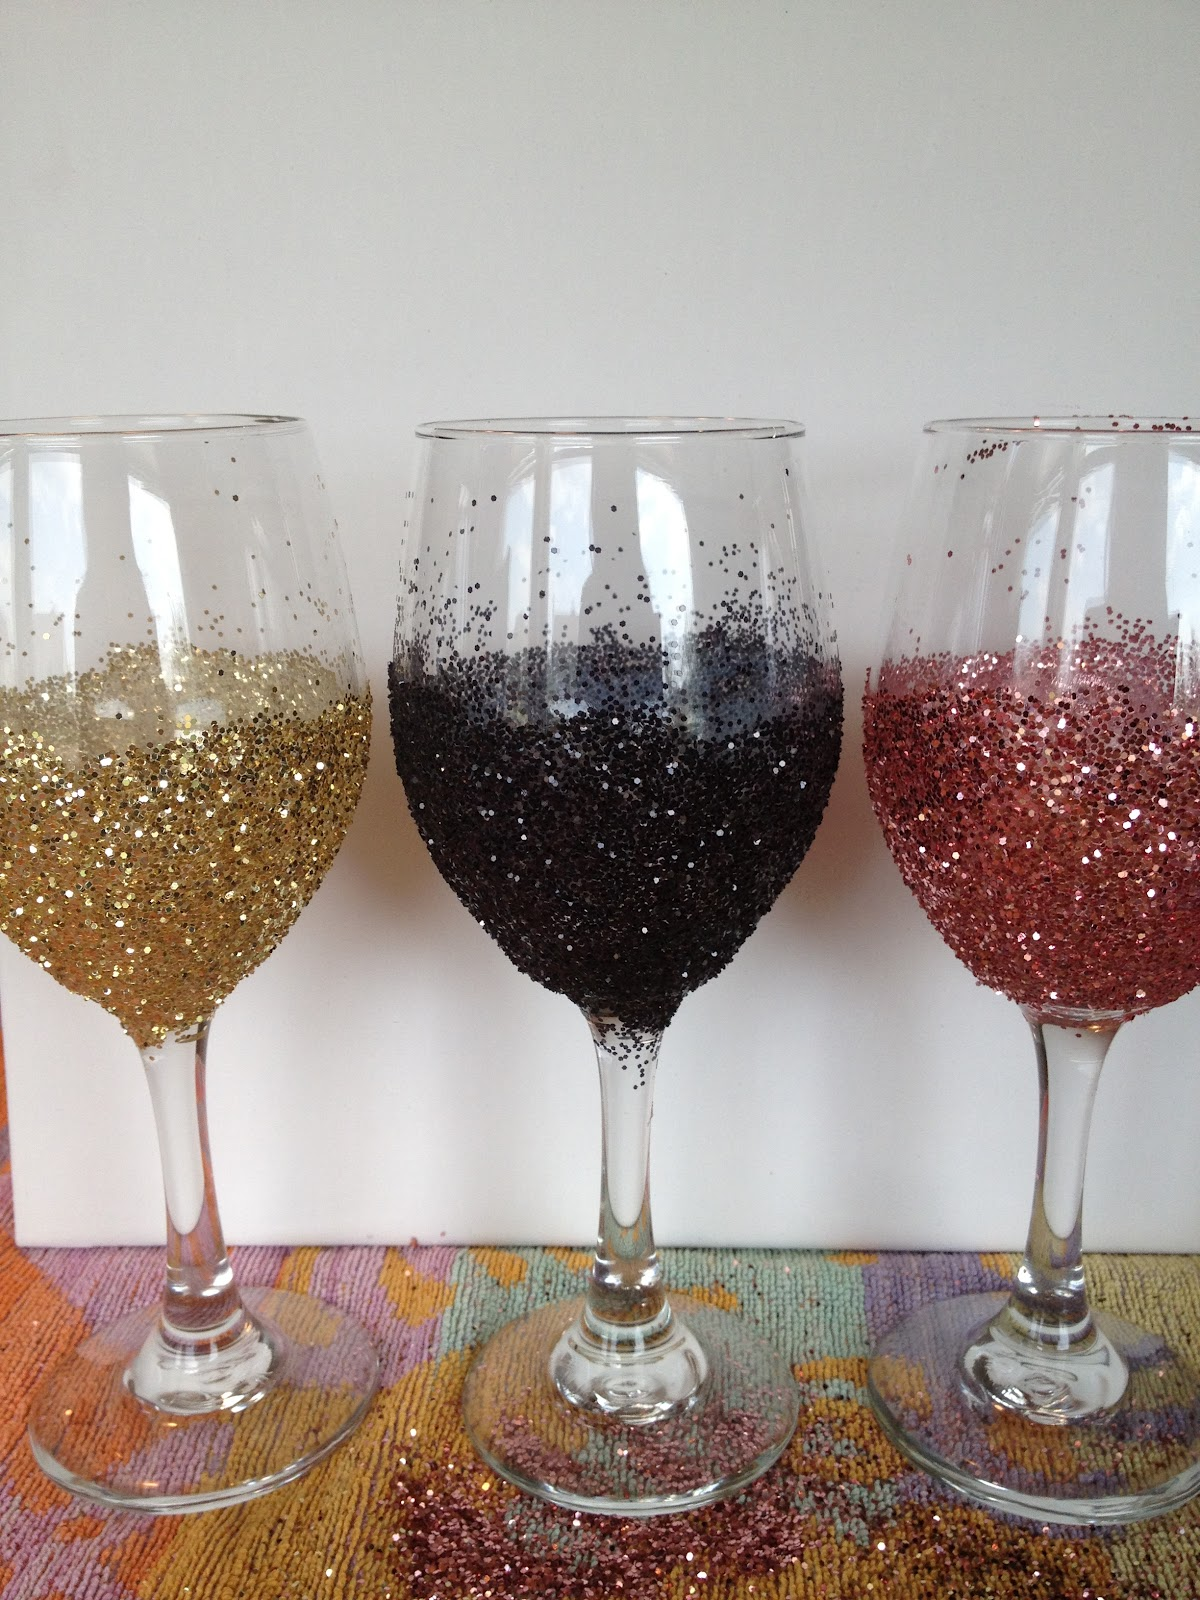 My Simple Obsessions Diy Glitter Wine Glasses: how to make wine glasses sparkle